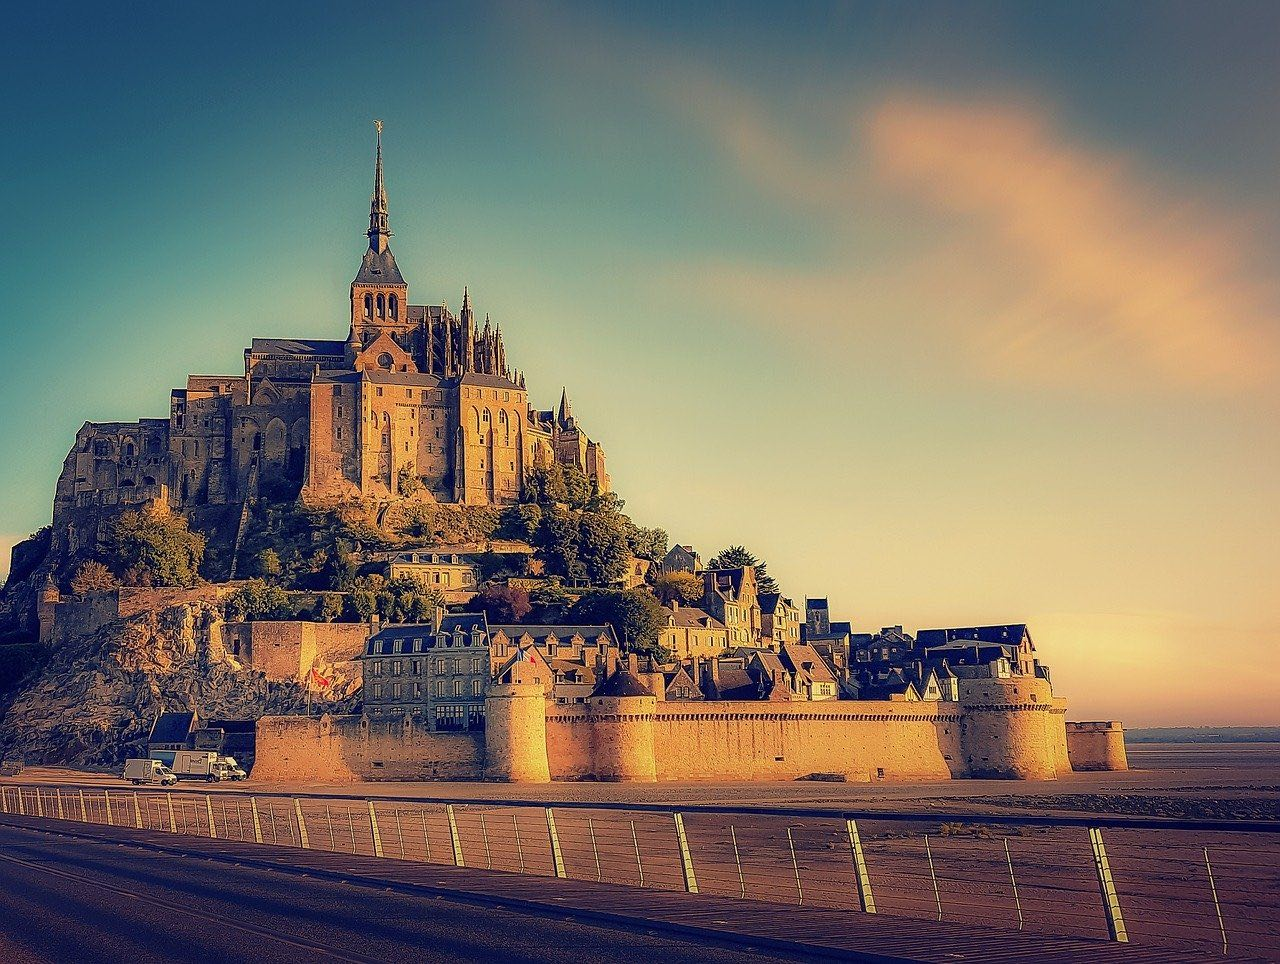 Mont Saint Michel Abbey Normandy France_PD